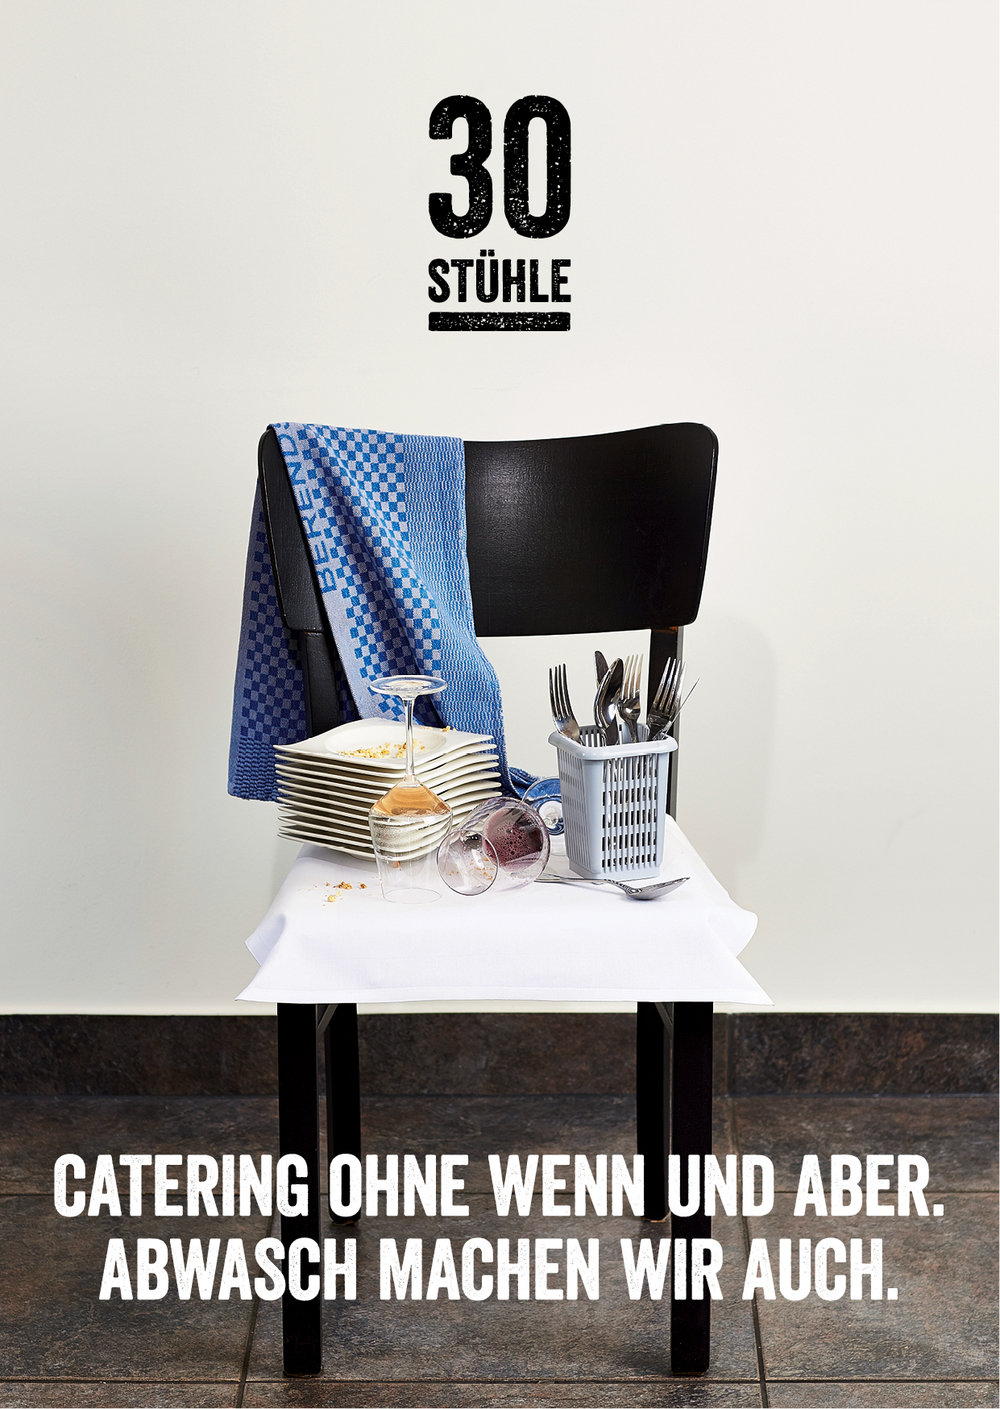 Catering Restaurant 30 Stühle